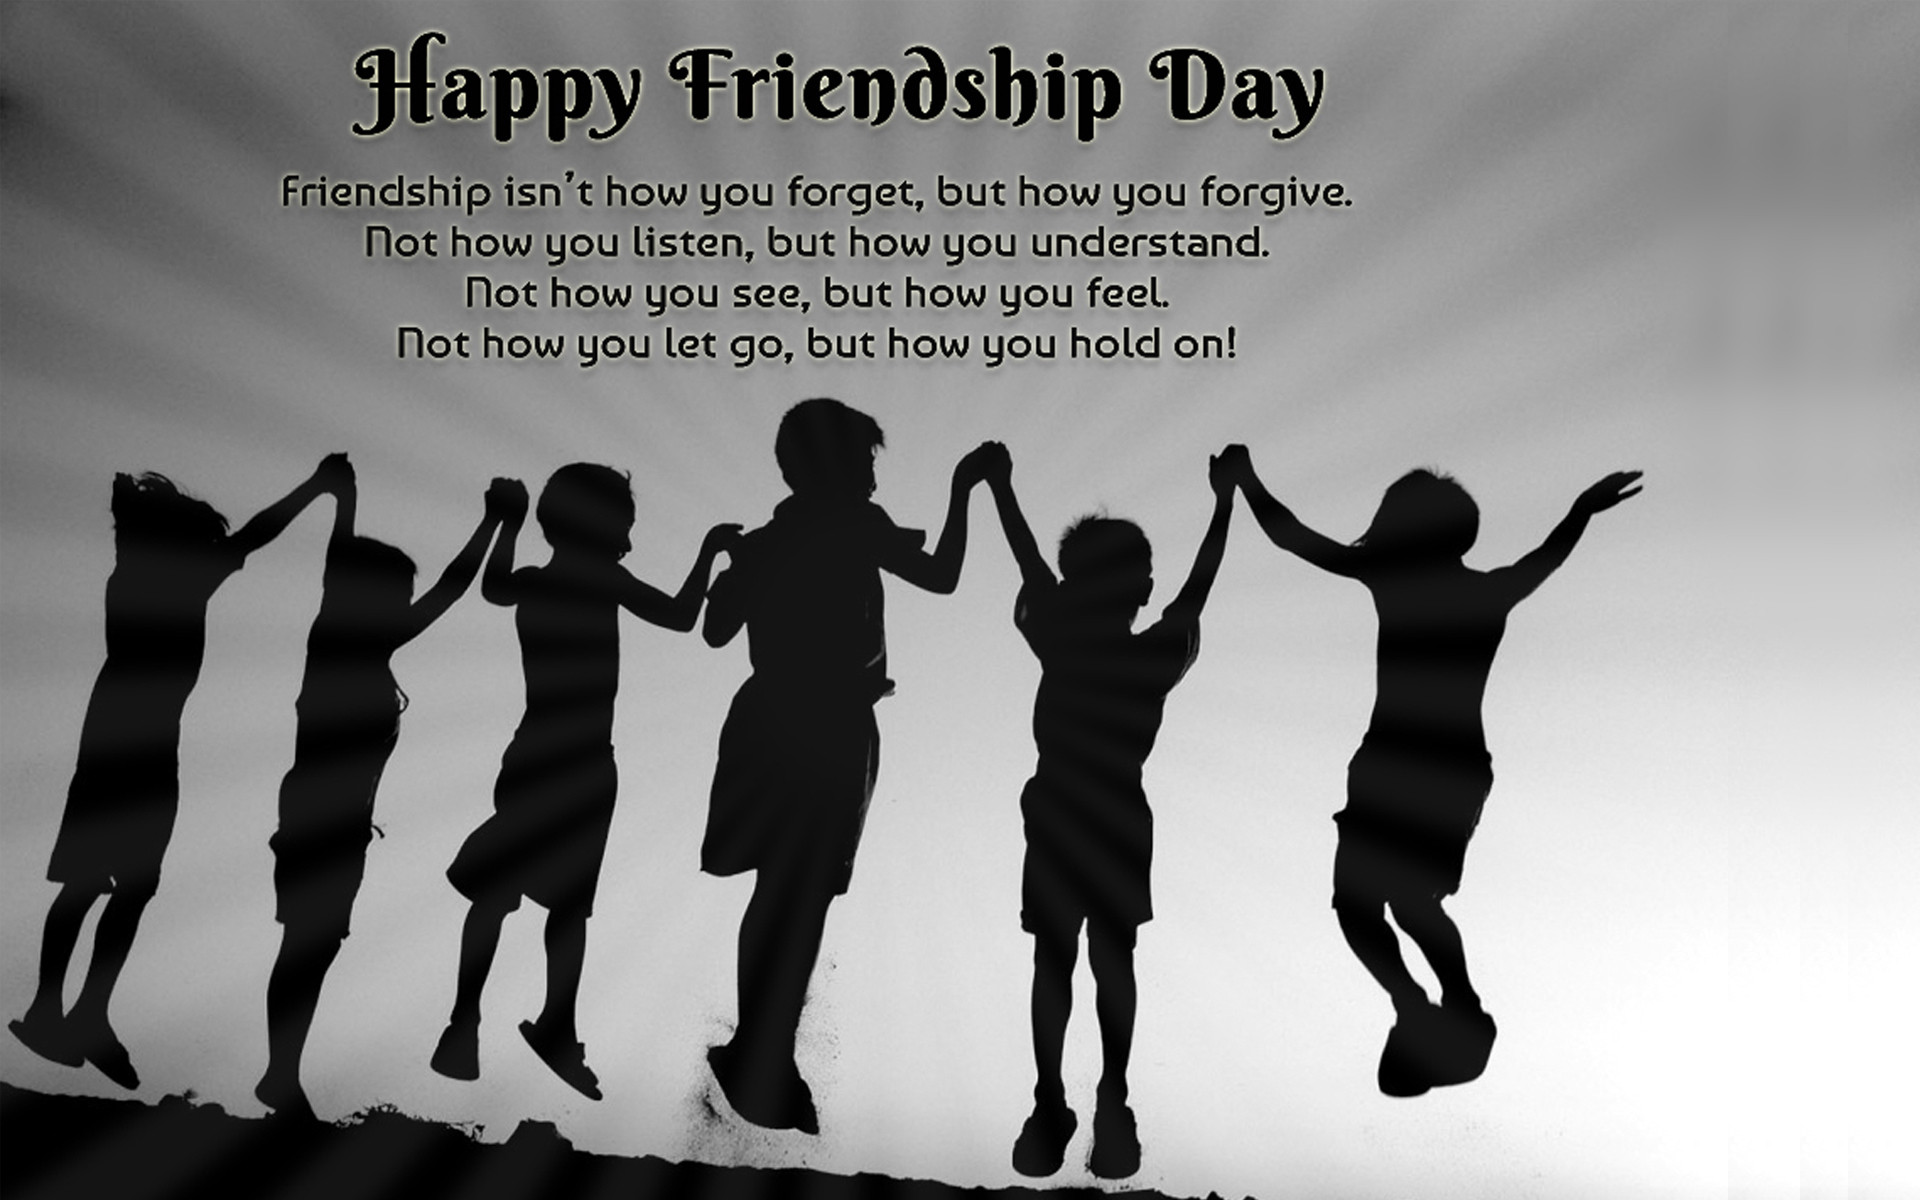 Wallpaper download english - Download Friendship Day Image Wallpaper